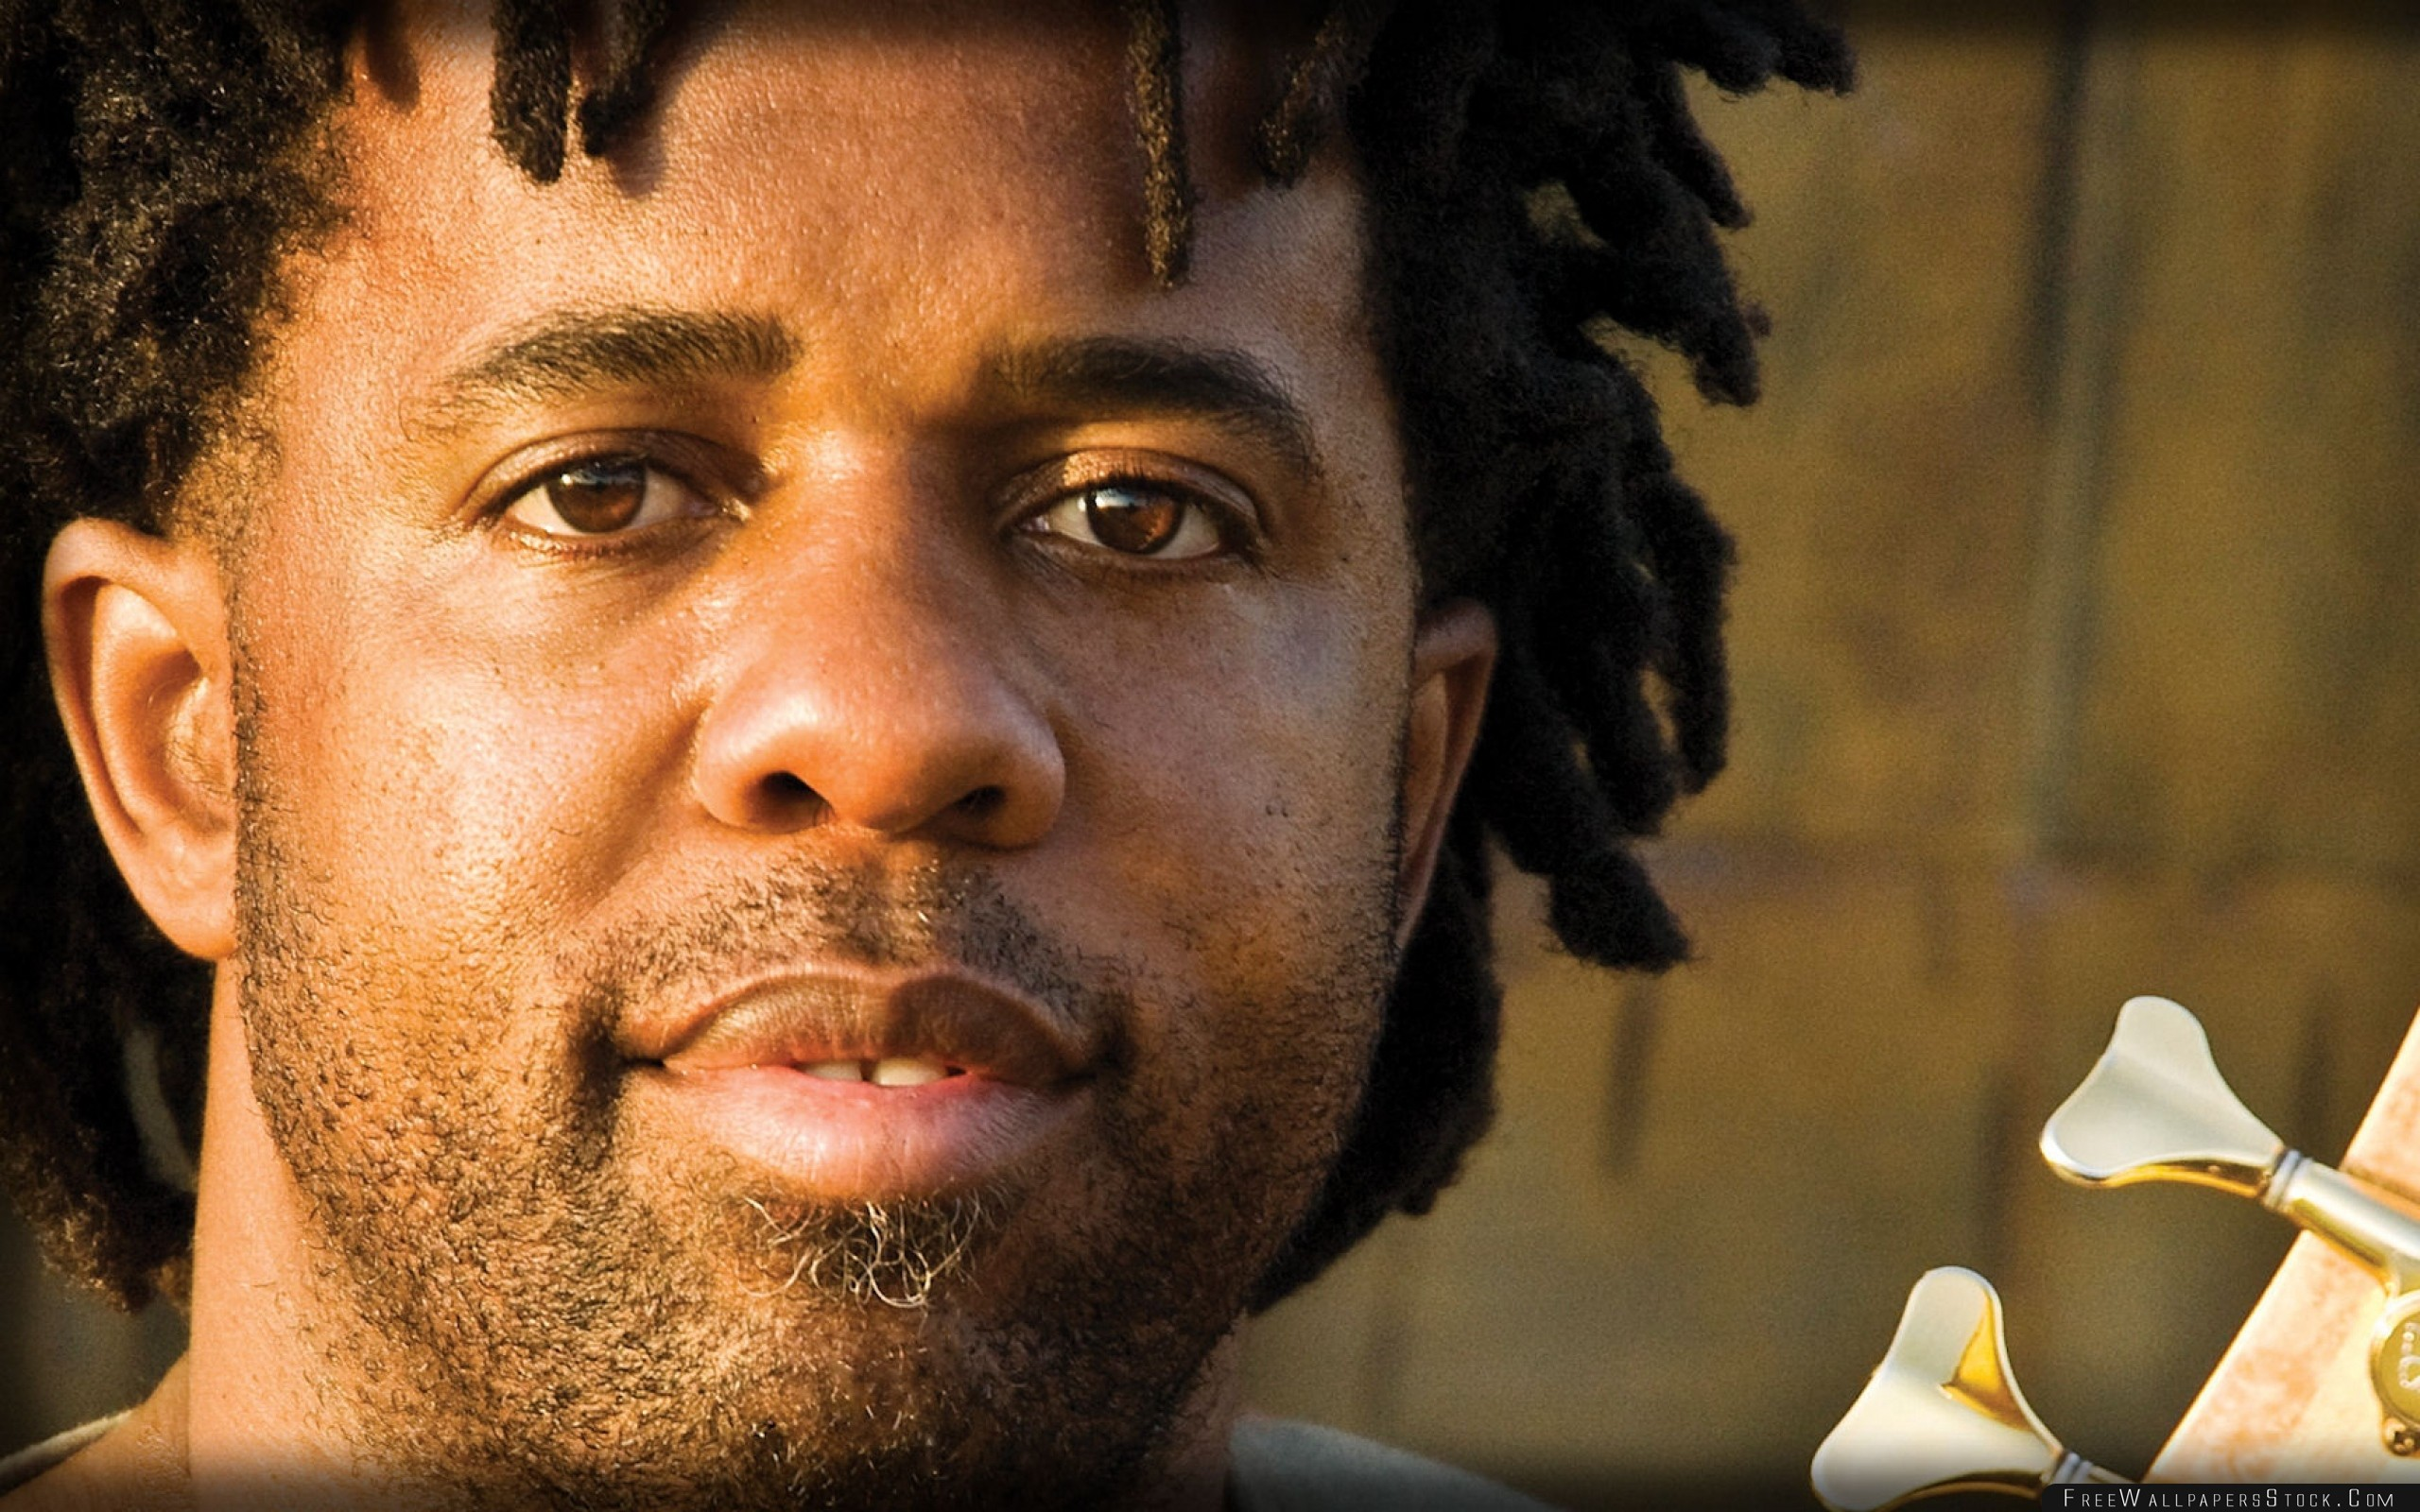 Download Free Wallpaper Victor Wooten Bristle Sunlight Eyes Dreadlocks